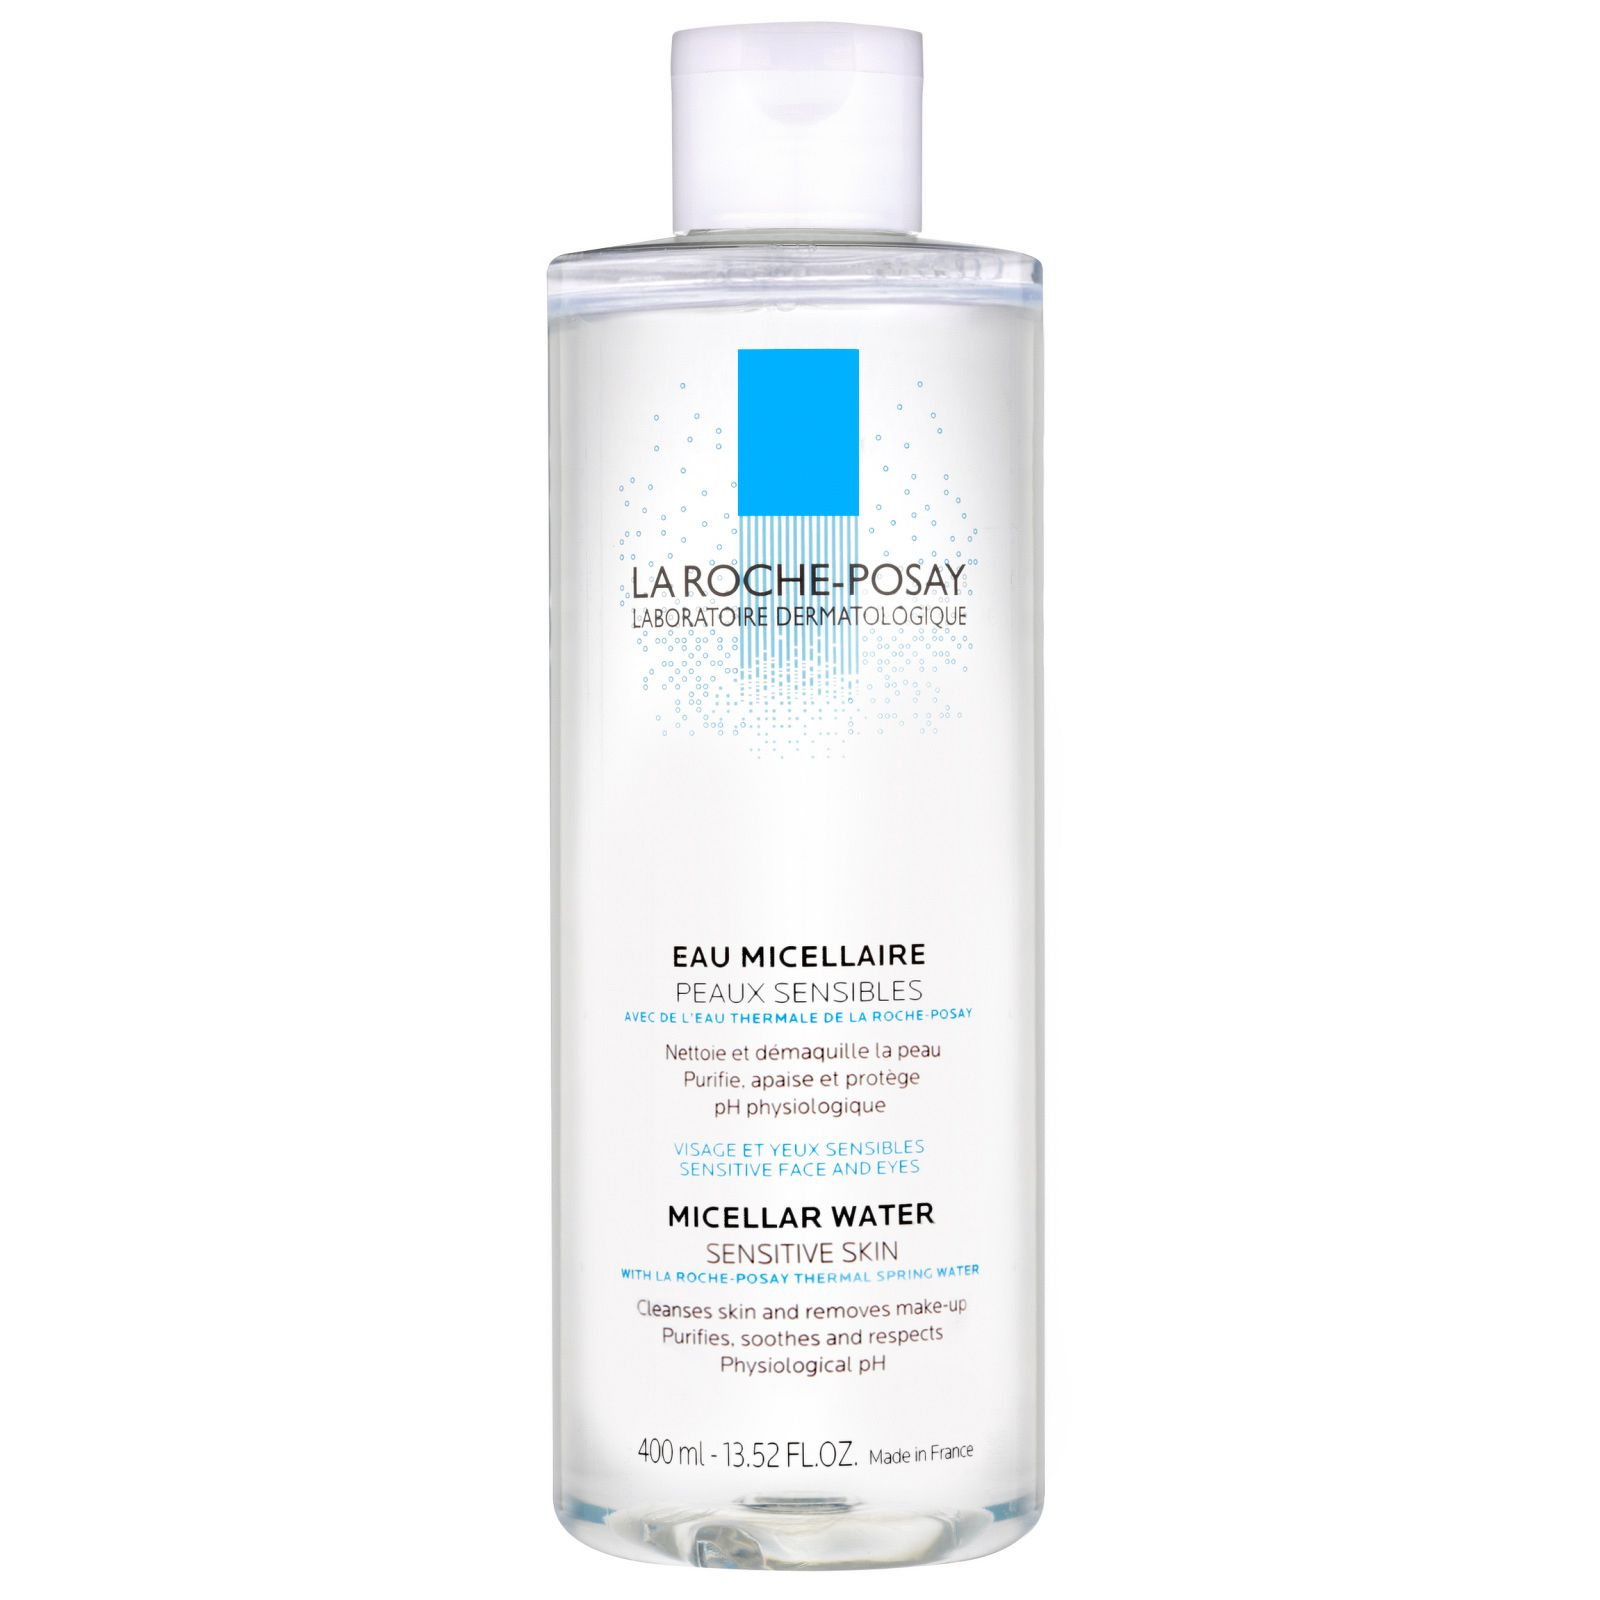 La Roche Posay Cleansing Micellar Water 400ml This Cleanser Gently Eliminates Impurities And Removes Makeup Micellar Water Micellar Cleansing Water Micellar